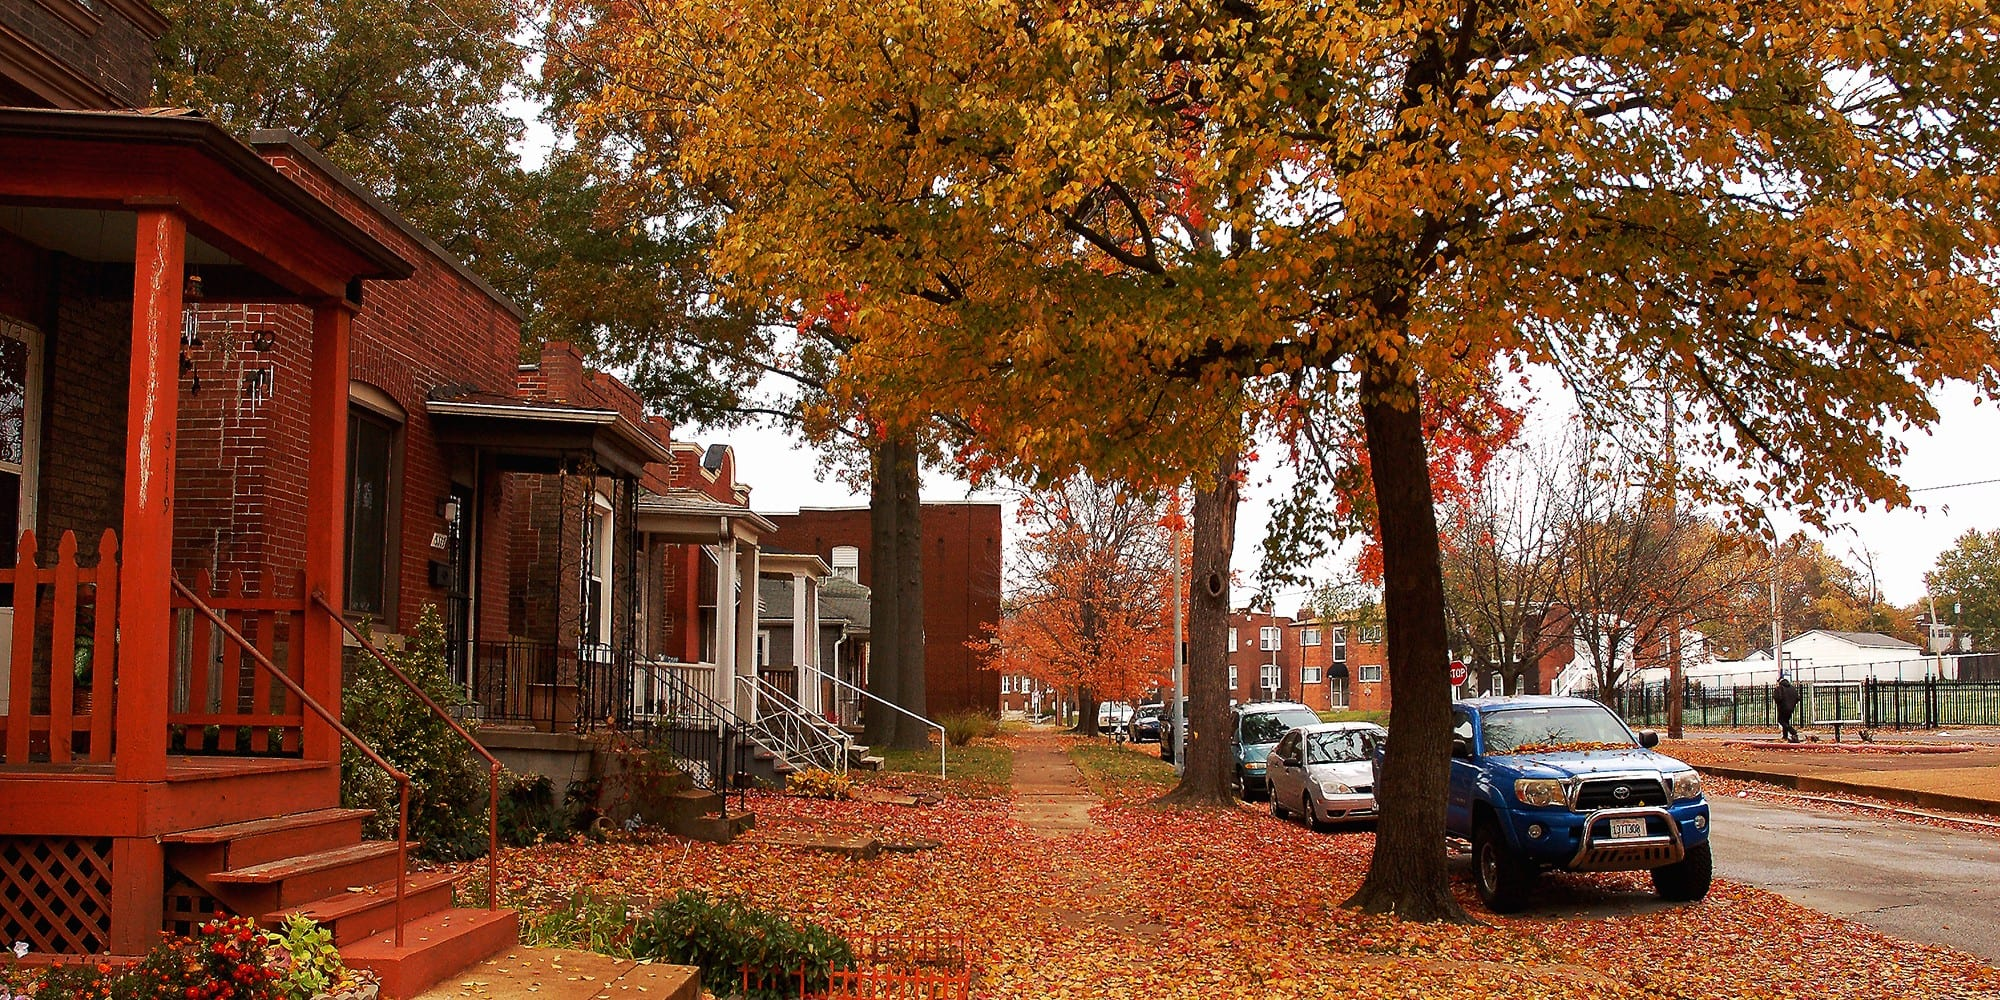 Vermont Ave. in Dutchtown with autumn leaves. Photo by Nick Findley.